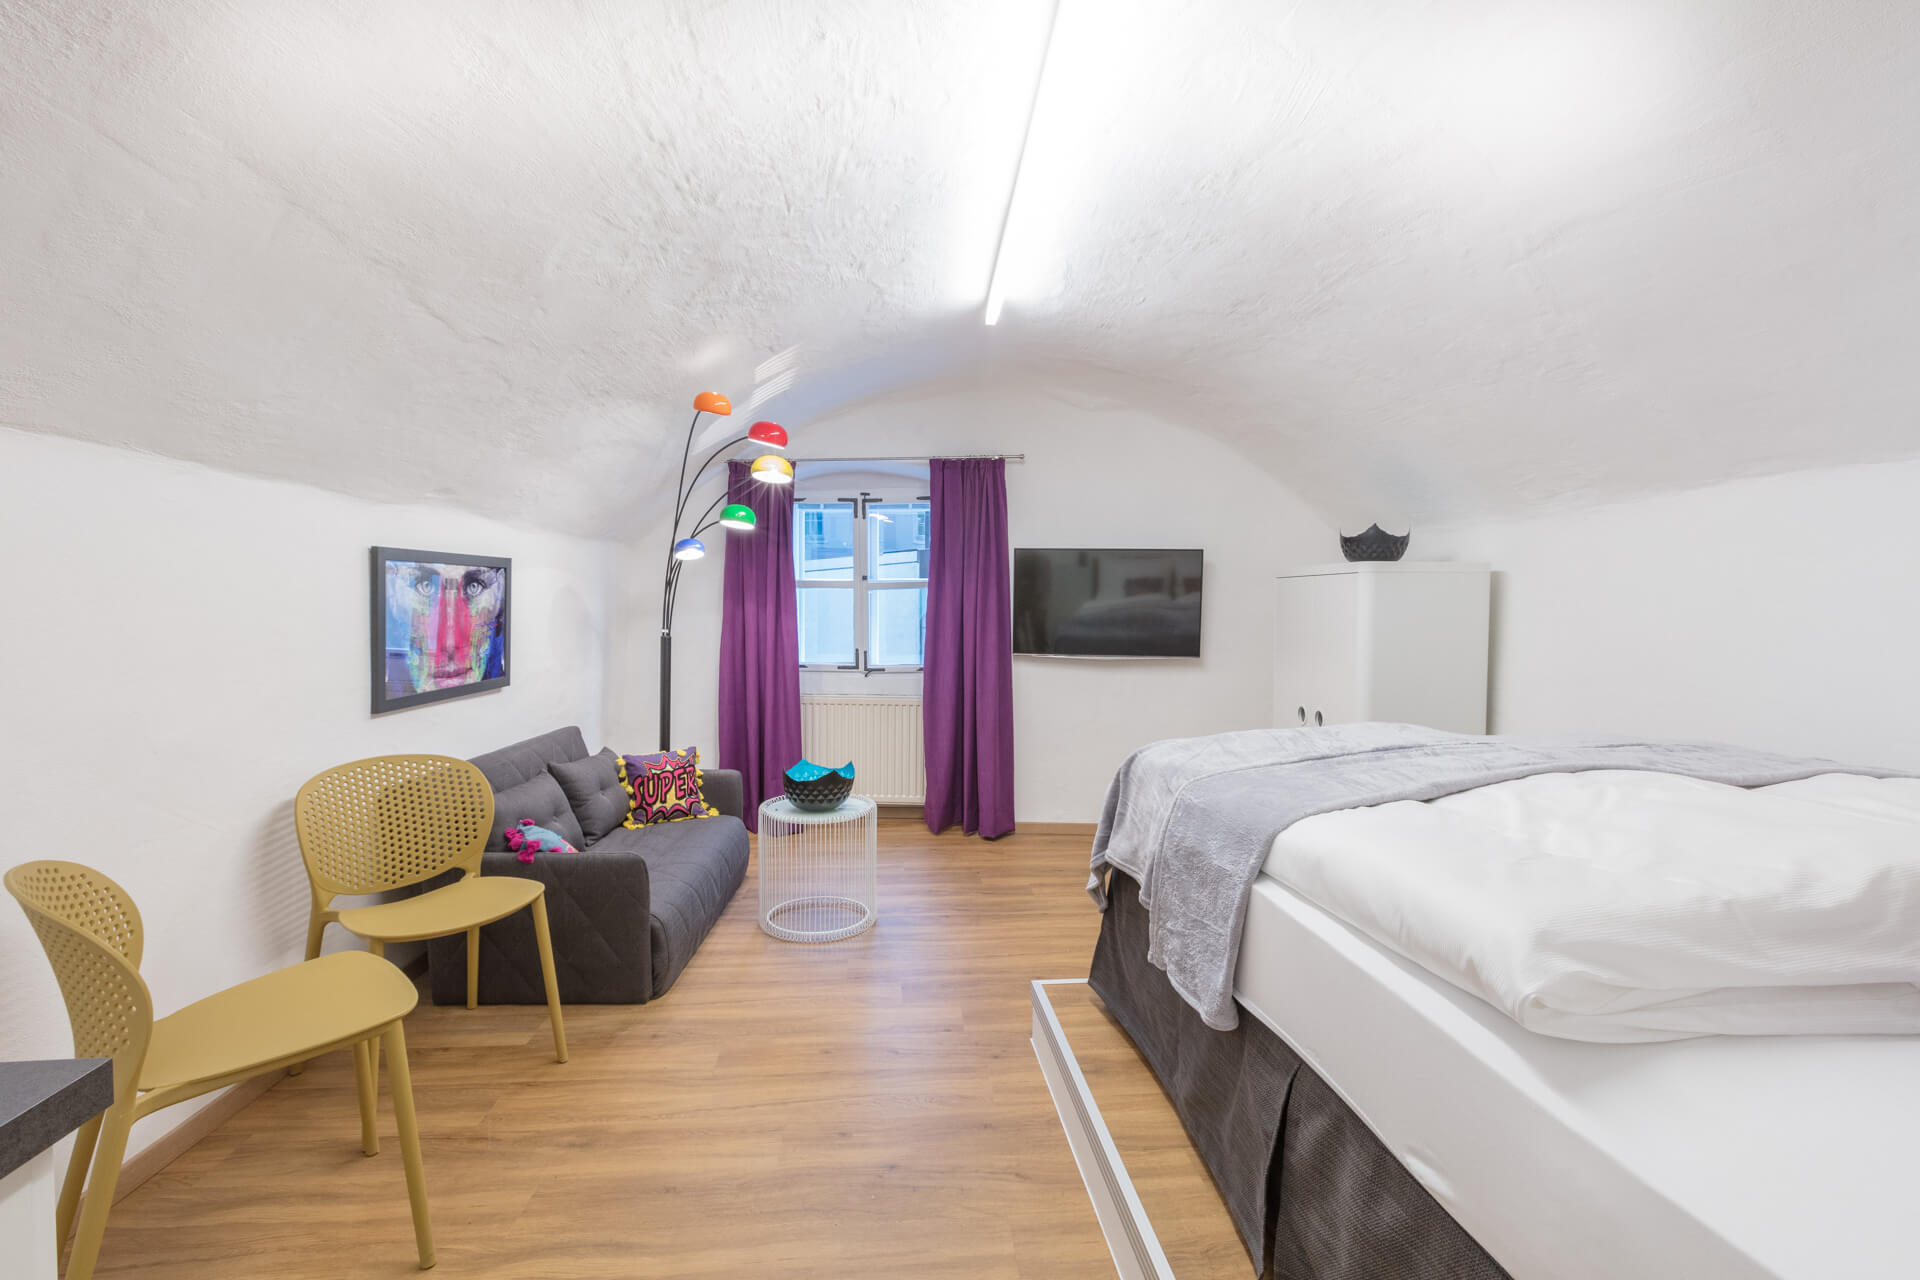 The colorful POP ART Apartment has approximately 25 m², is located on the first floor of the Stone Lodge and offers views of the historic Steingasse.